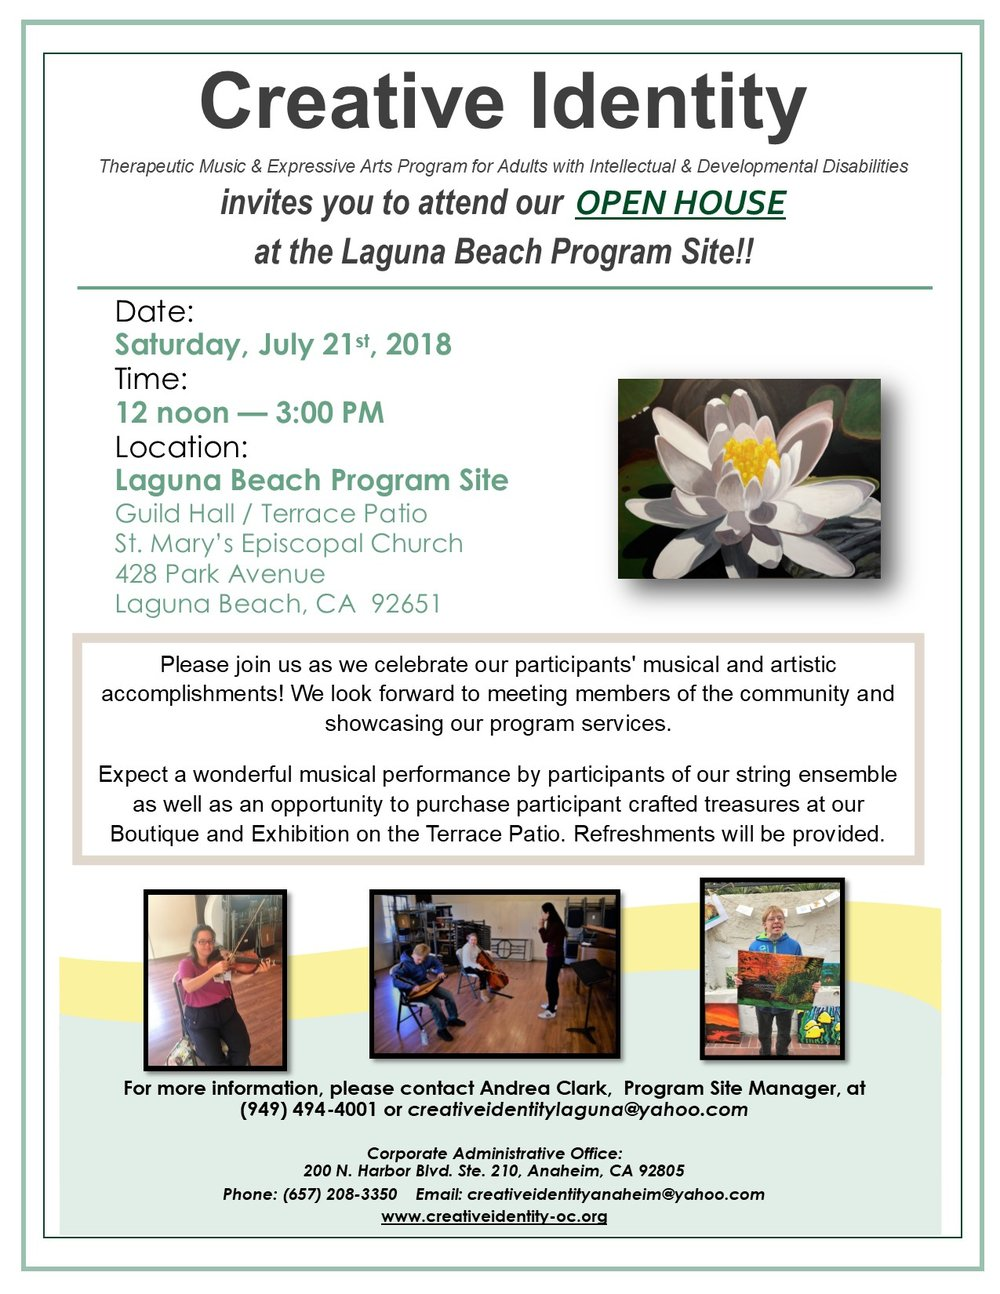 Please join us! - You're invited to attend Creative Identity's Open House celebration at our Laguna Beach program site located at 428 Park Ave., Laguna Beach, CA 92651. Come ready to celebrate our participants' musical and artistic accomplishments as we showcase our program services!